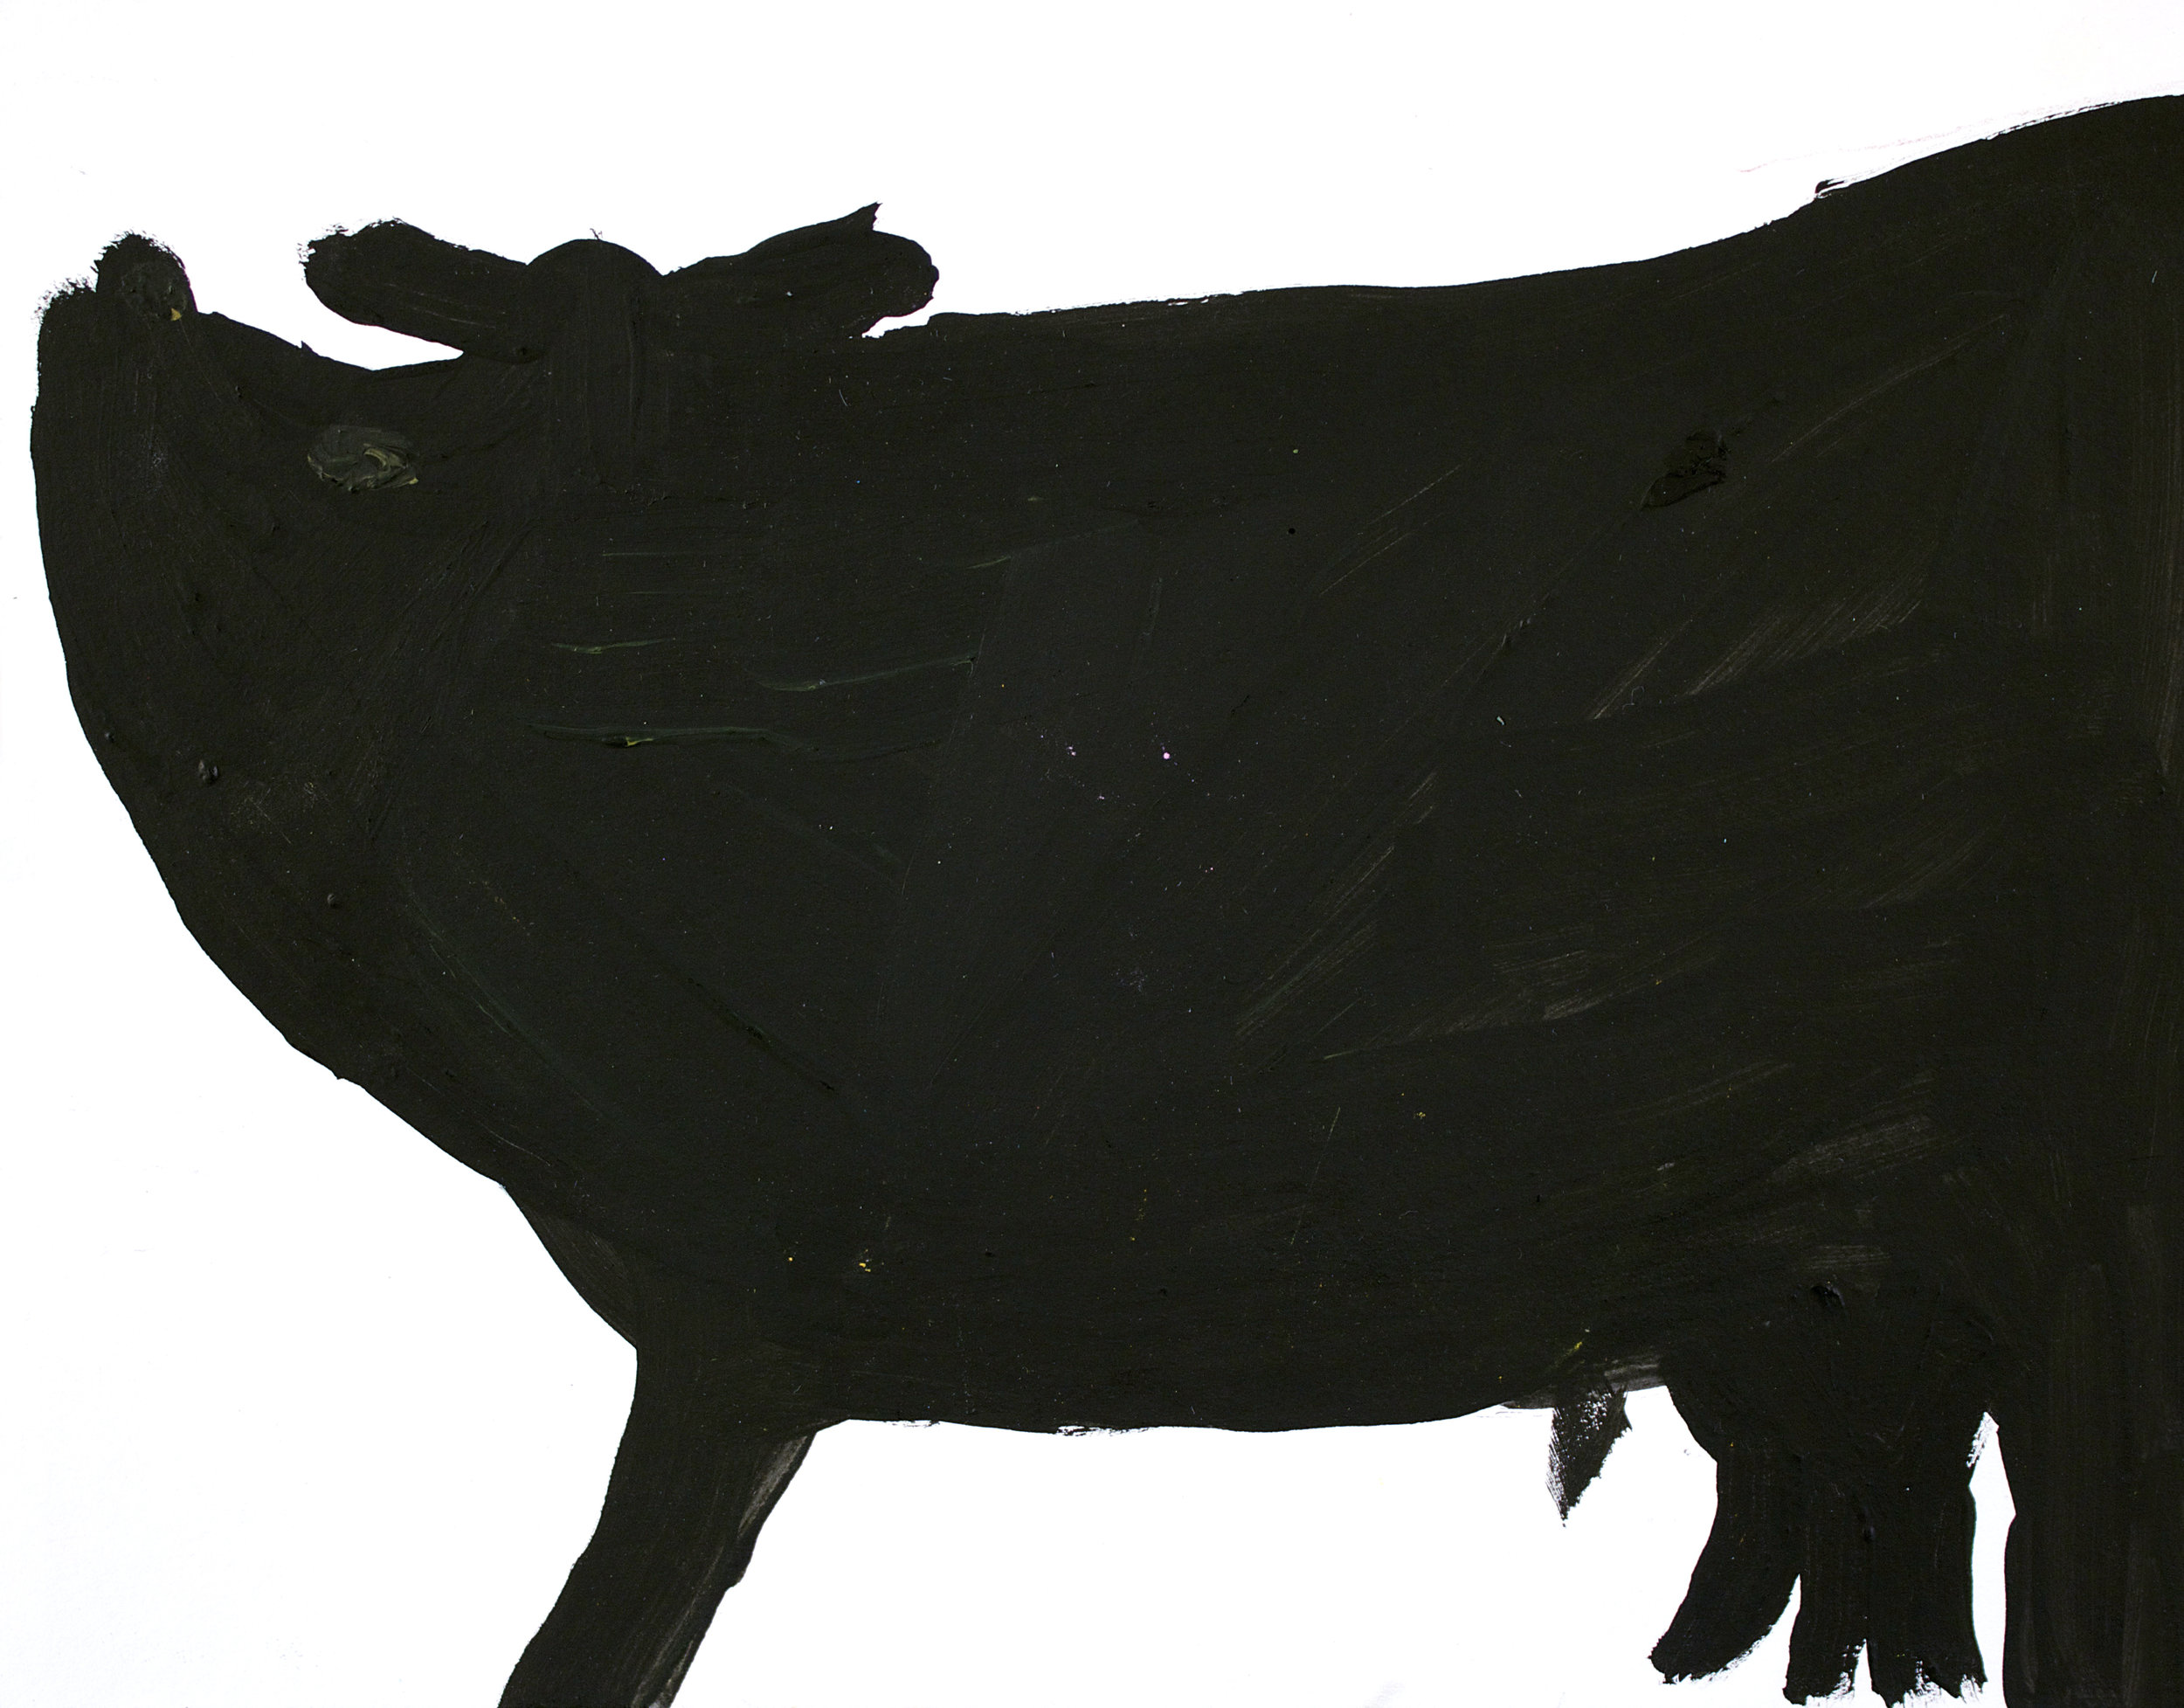 Big Black Bull, acrylic on paper